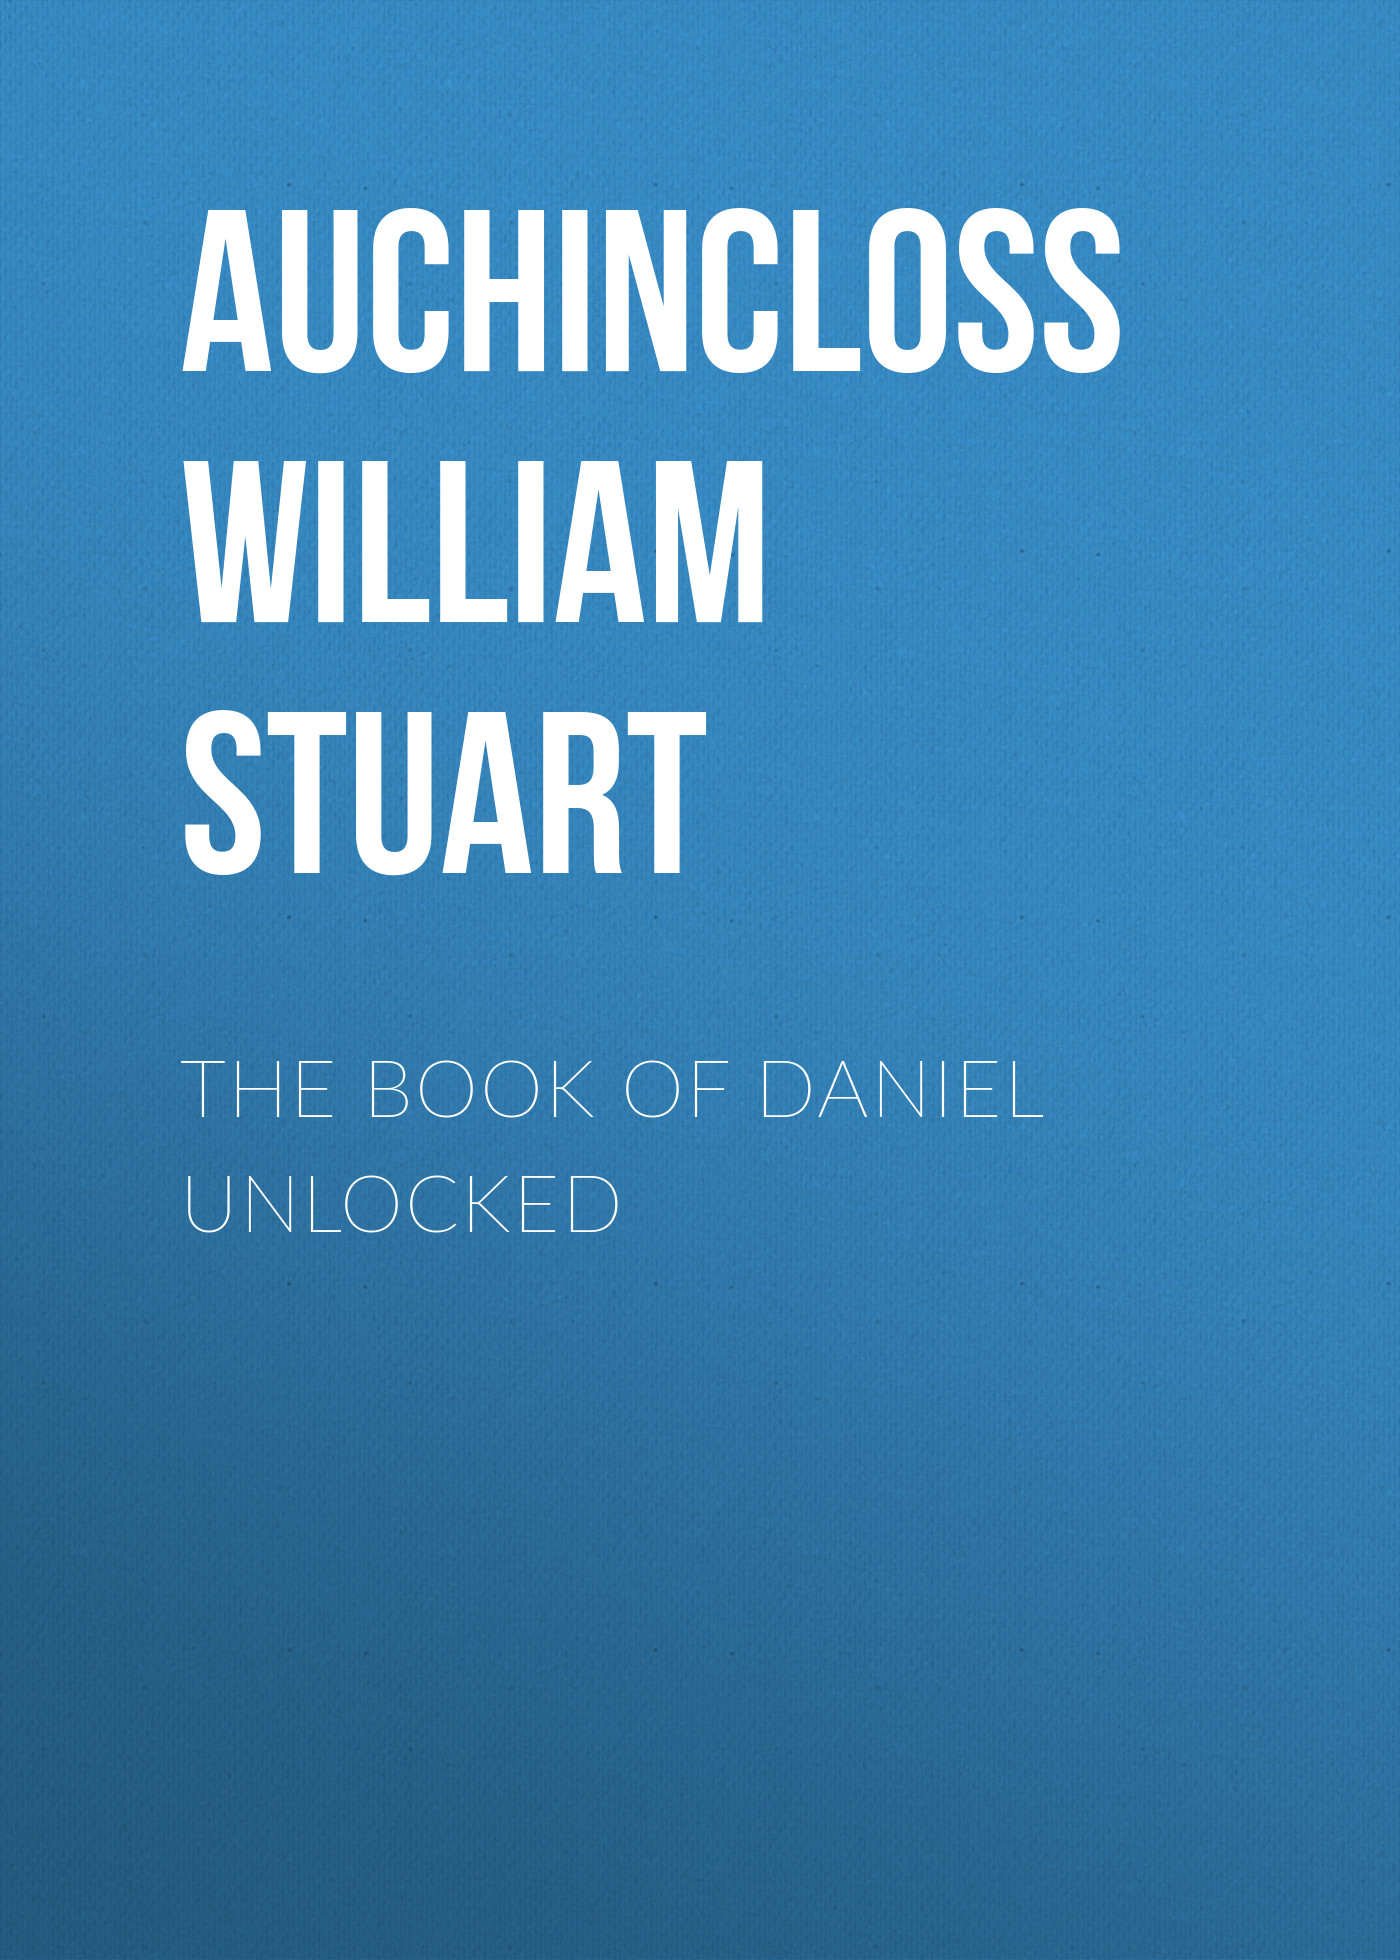 Auchincloss William Stuart The Book of Daniel Unlocked william garden blaikie the book of joshua v 6